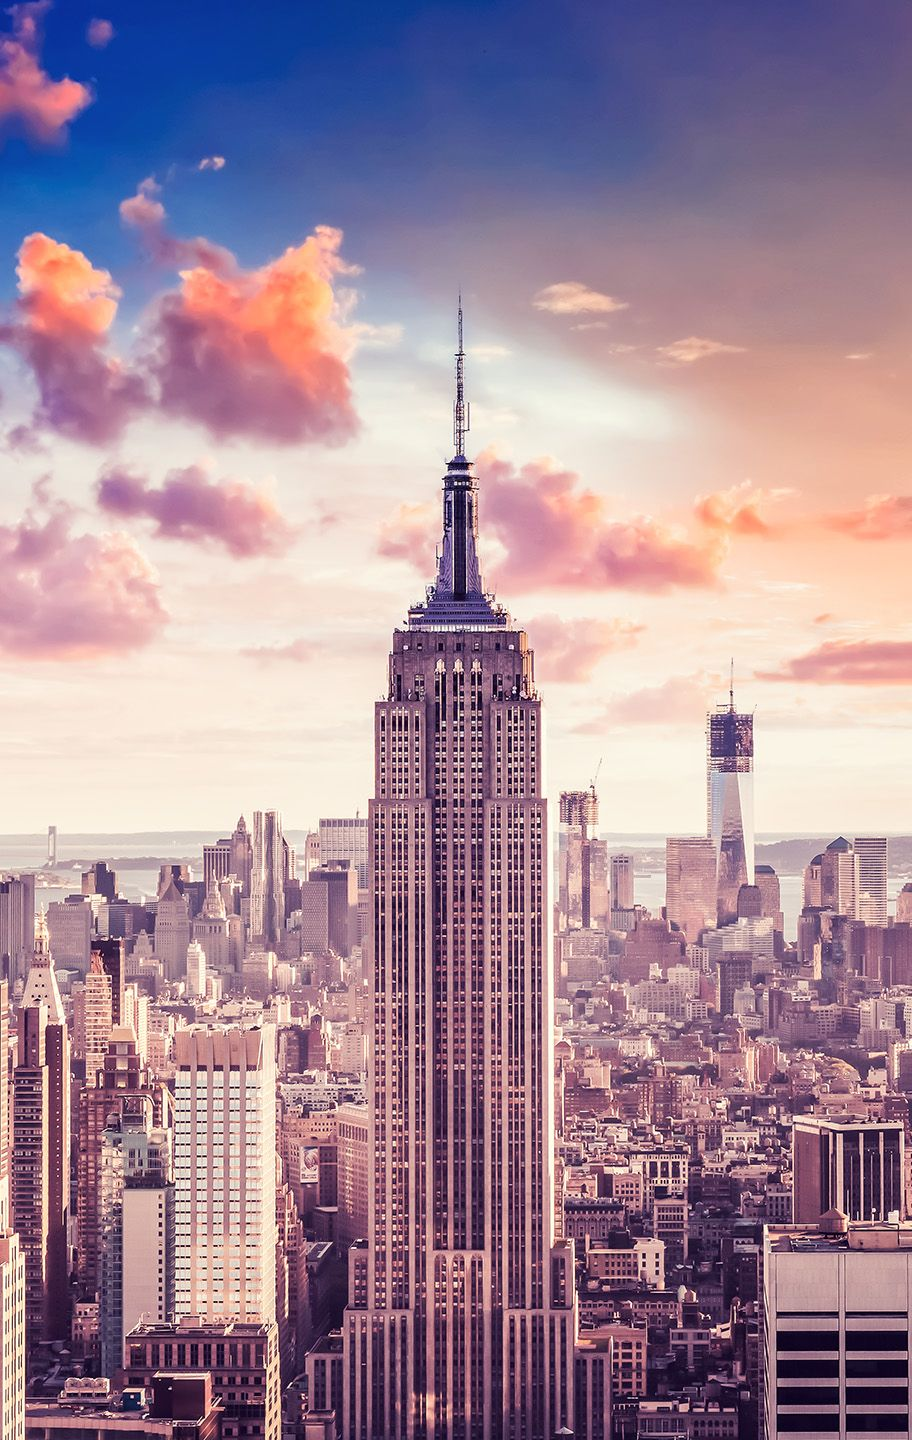 Tumblr iphone wallpaper new york - See 18334 Photos And 1073 Tips From 122495 Visitors To Empire State Building The Empire State Building Is An Iconic Staple Of New York City History